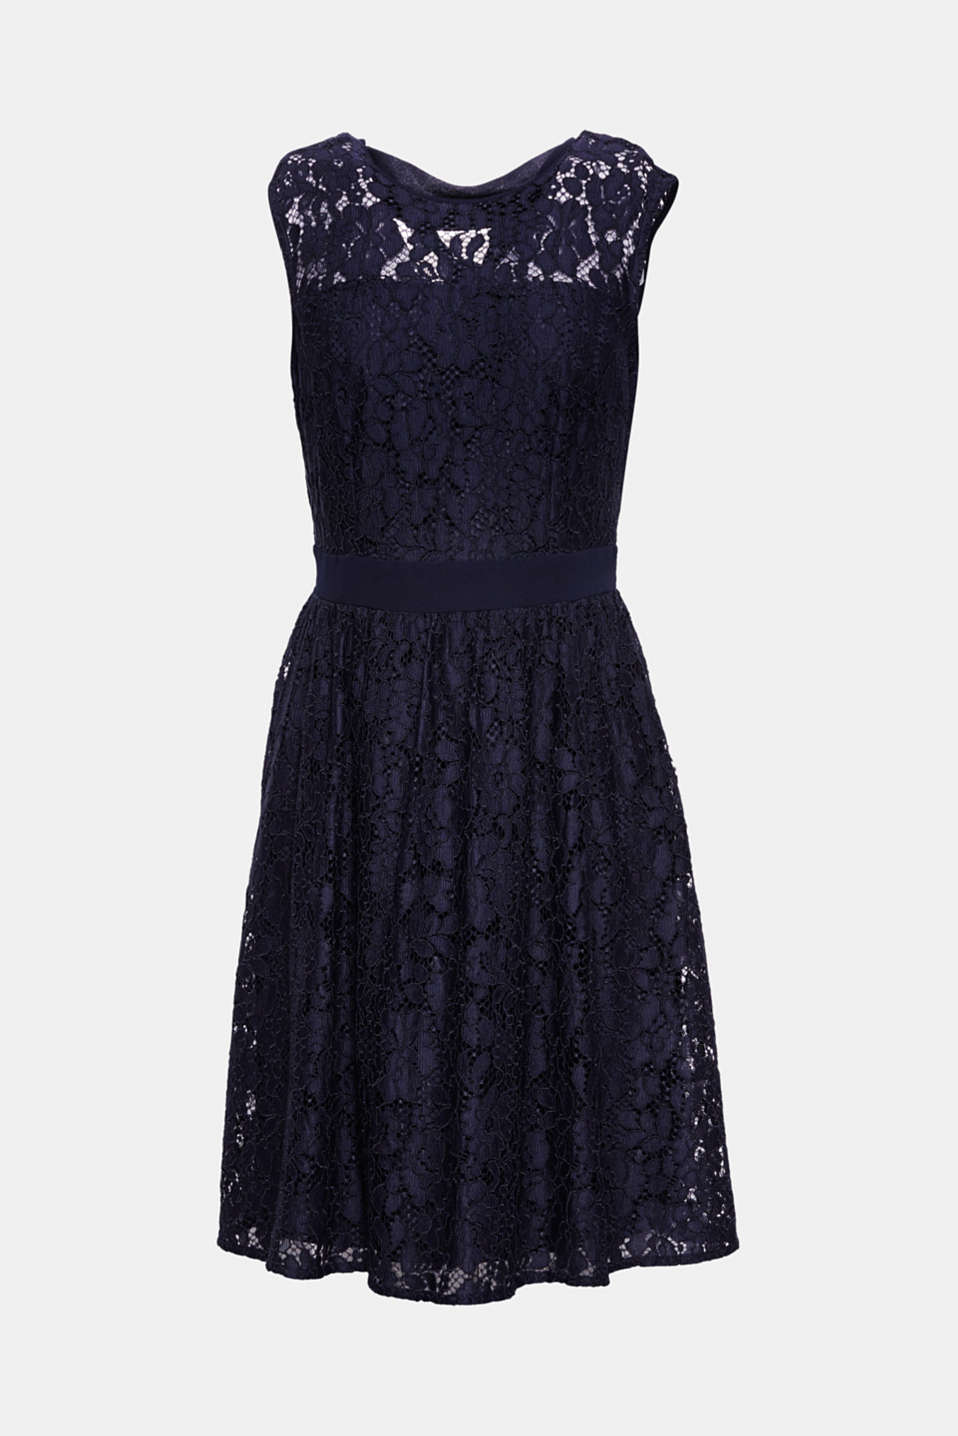 Elegant and feminine, this flared dress in floral lace features a figure-hugging bodice with pretty loop straps.